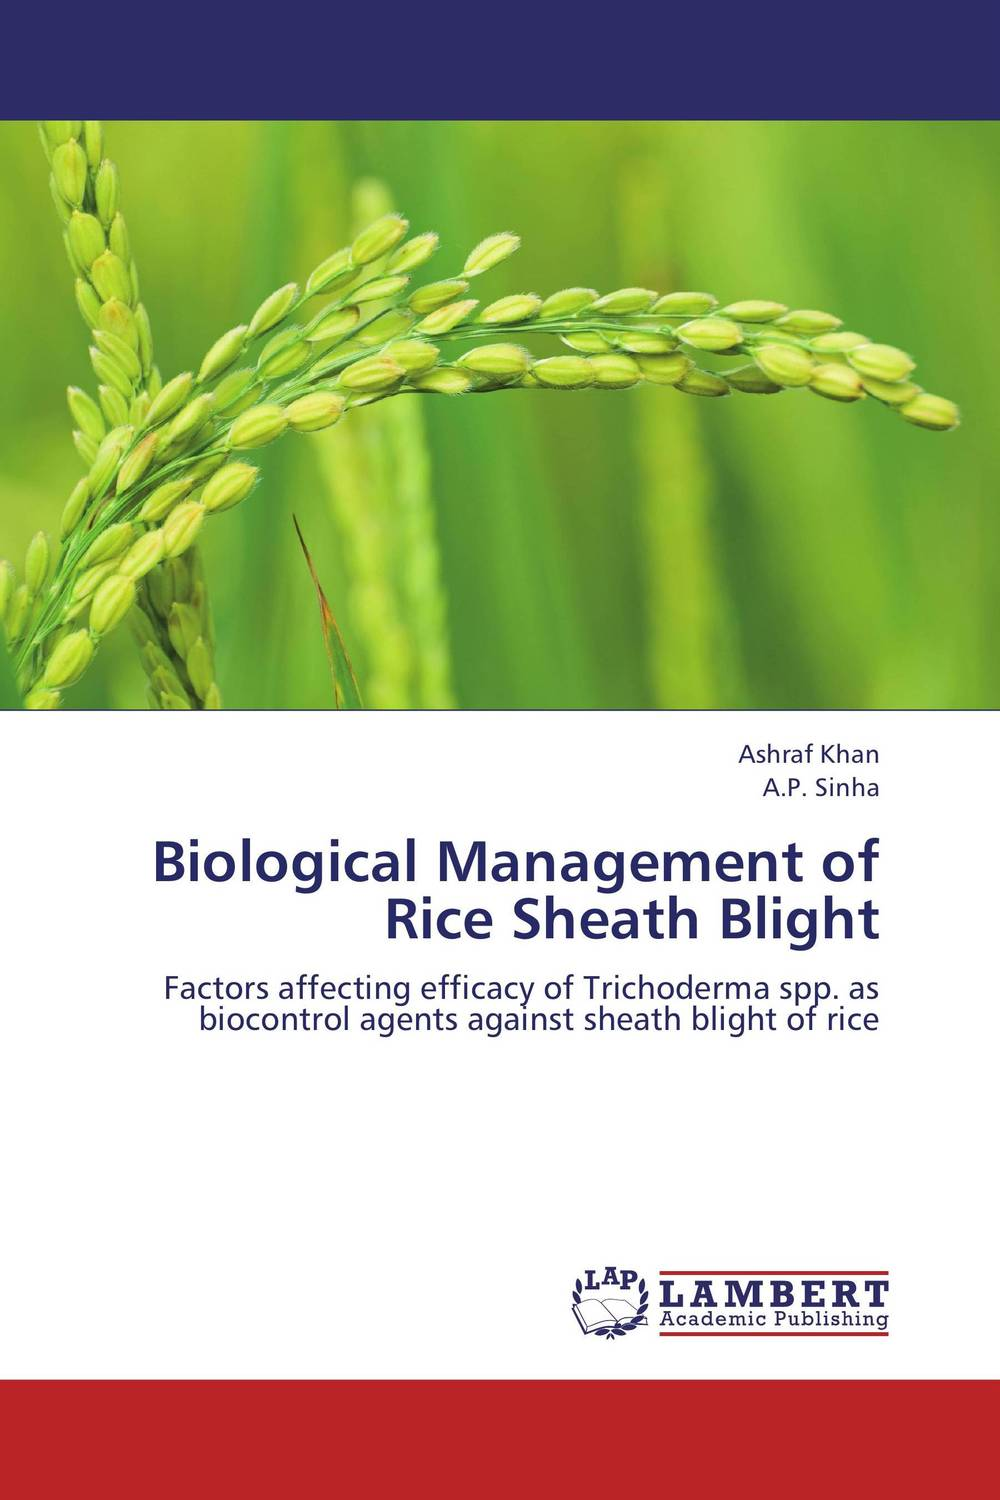 Biological Management of Rice Sheath Blight k r k naidu a v ramana and r veeraraghavaiah common vetch management in rice fallow blackgram